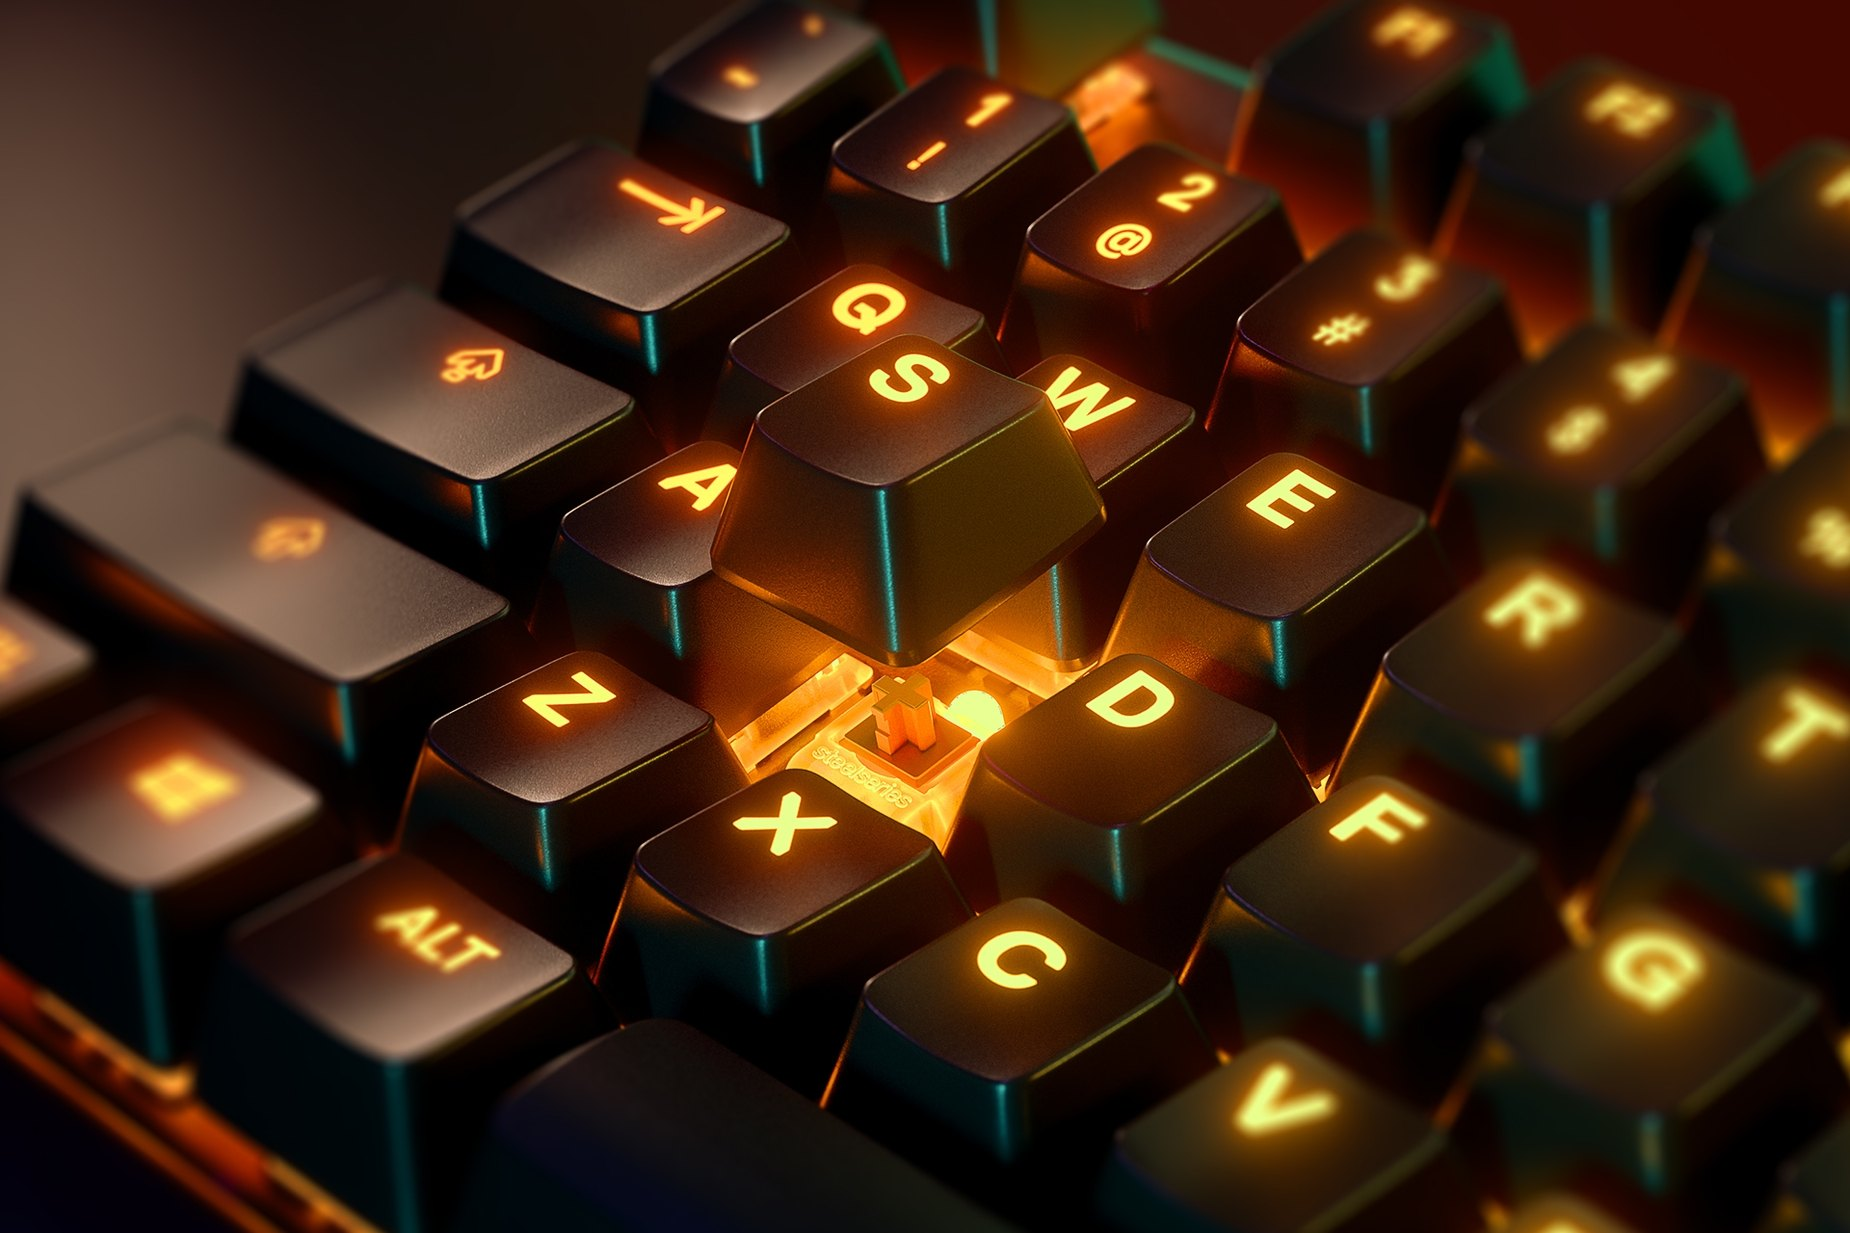 Zoomed in view of a single key on the German - Apex 7 (Brown Switch) gaming keyboard, the key is raised up to show the SteelSeries QX2 Mechanical RGB Switch underneath